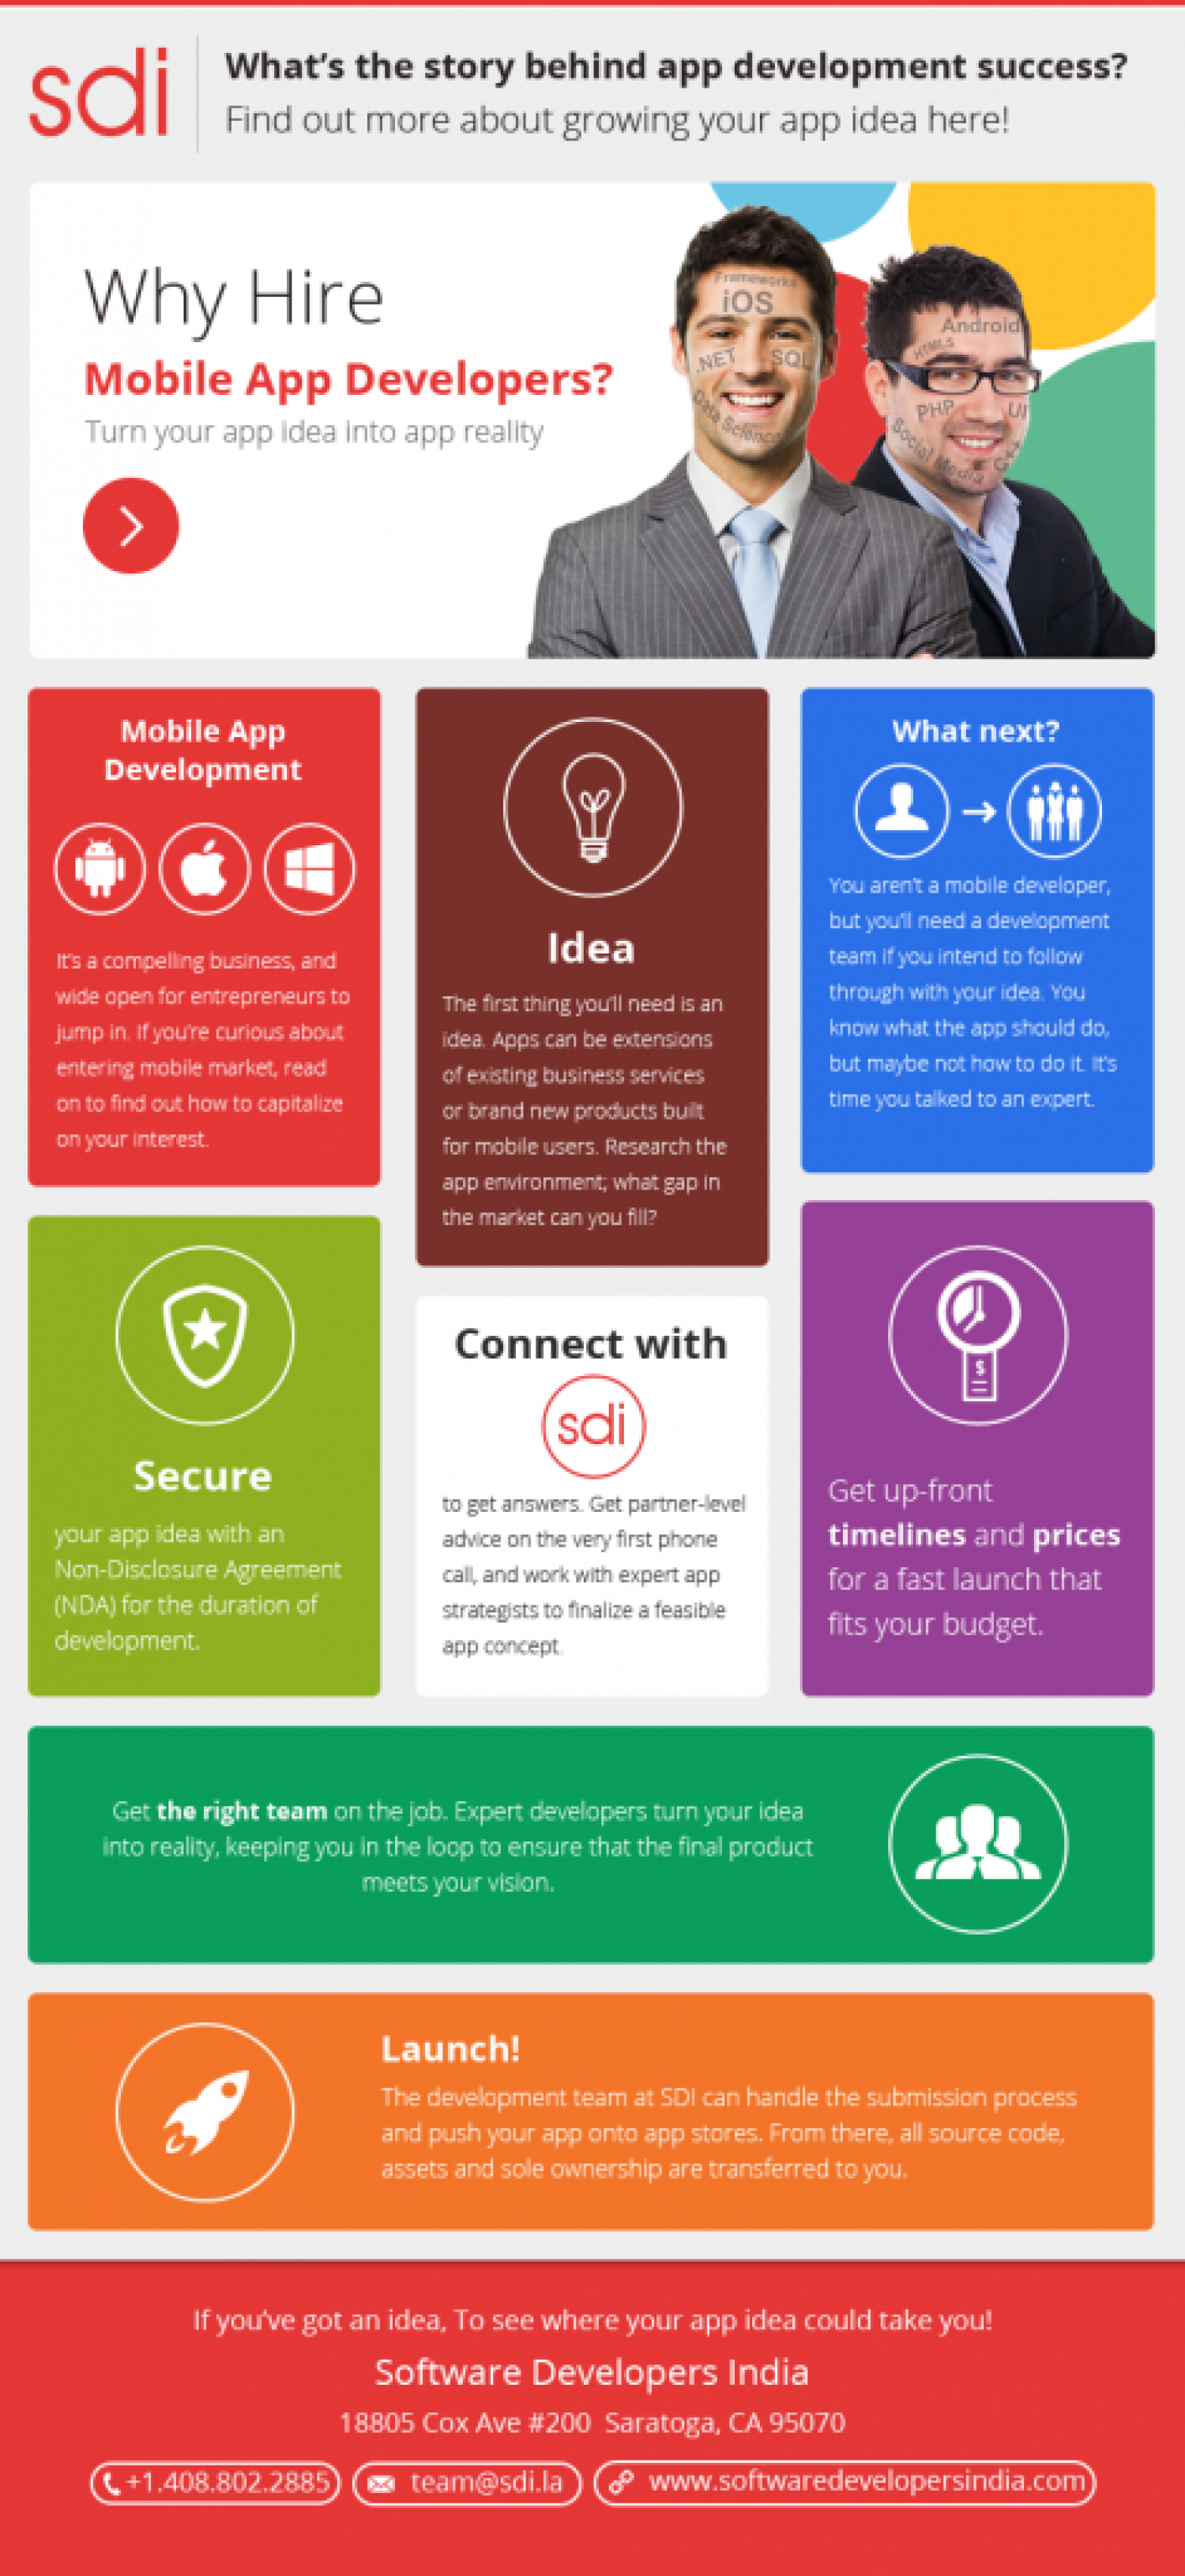 Why Hire Mobile App Developers Infographic